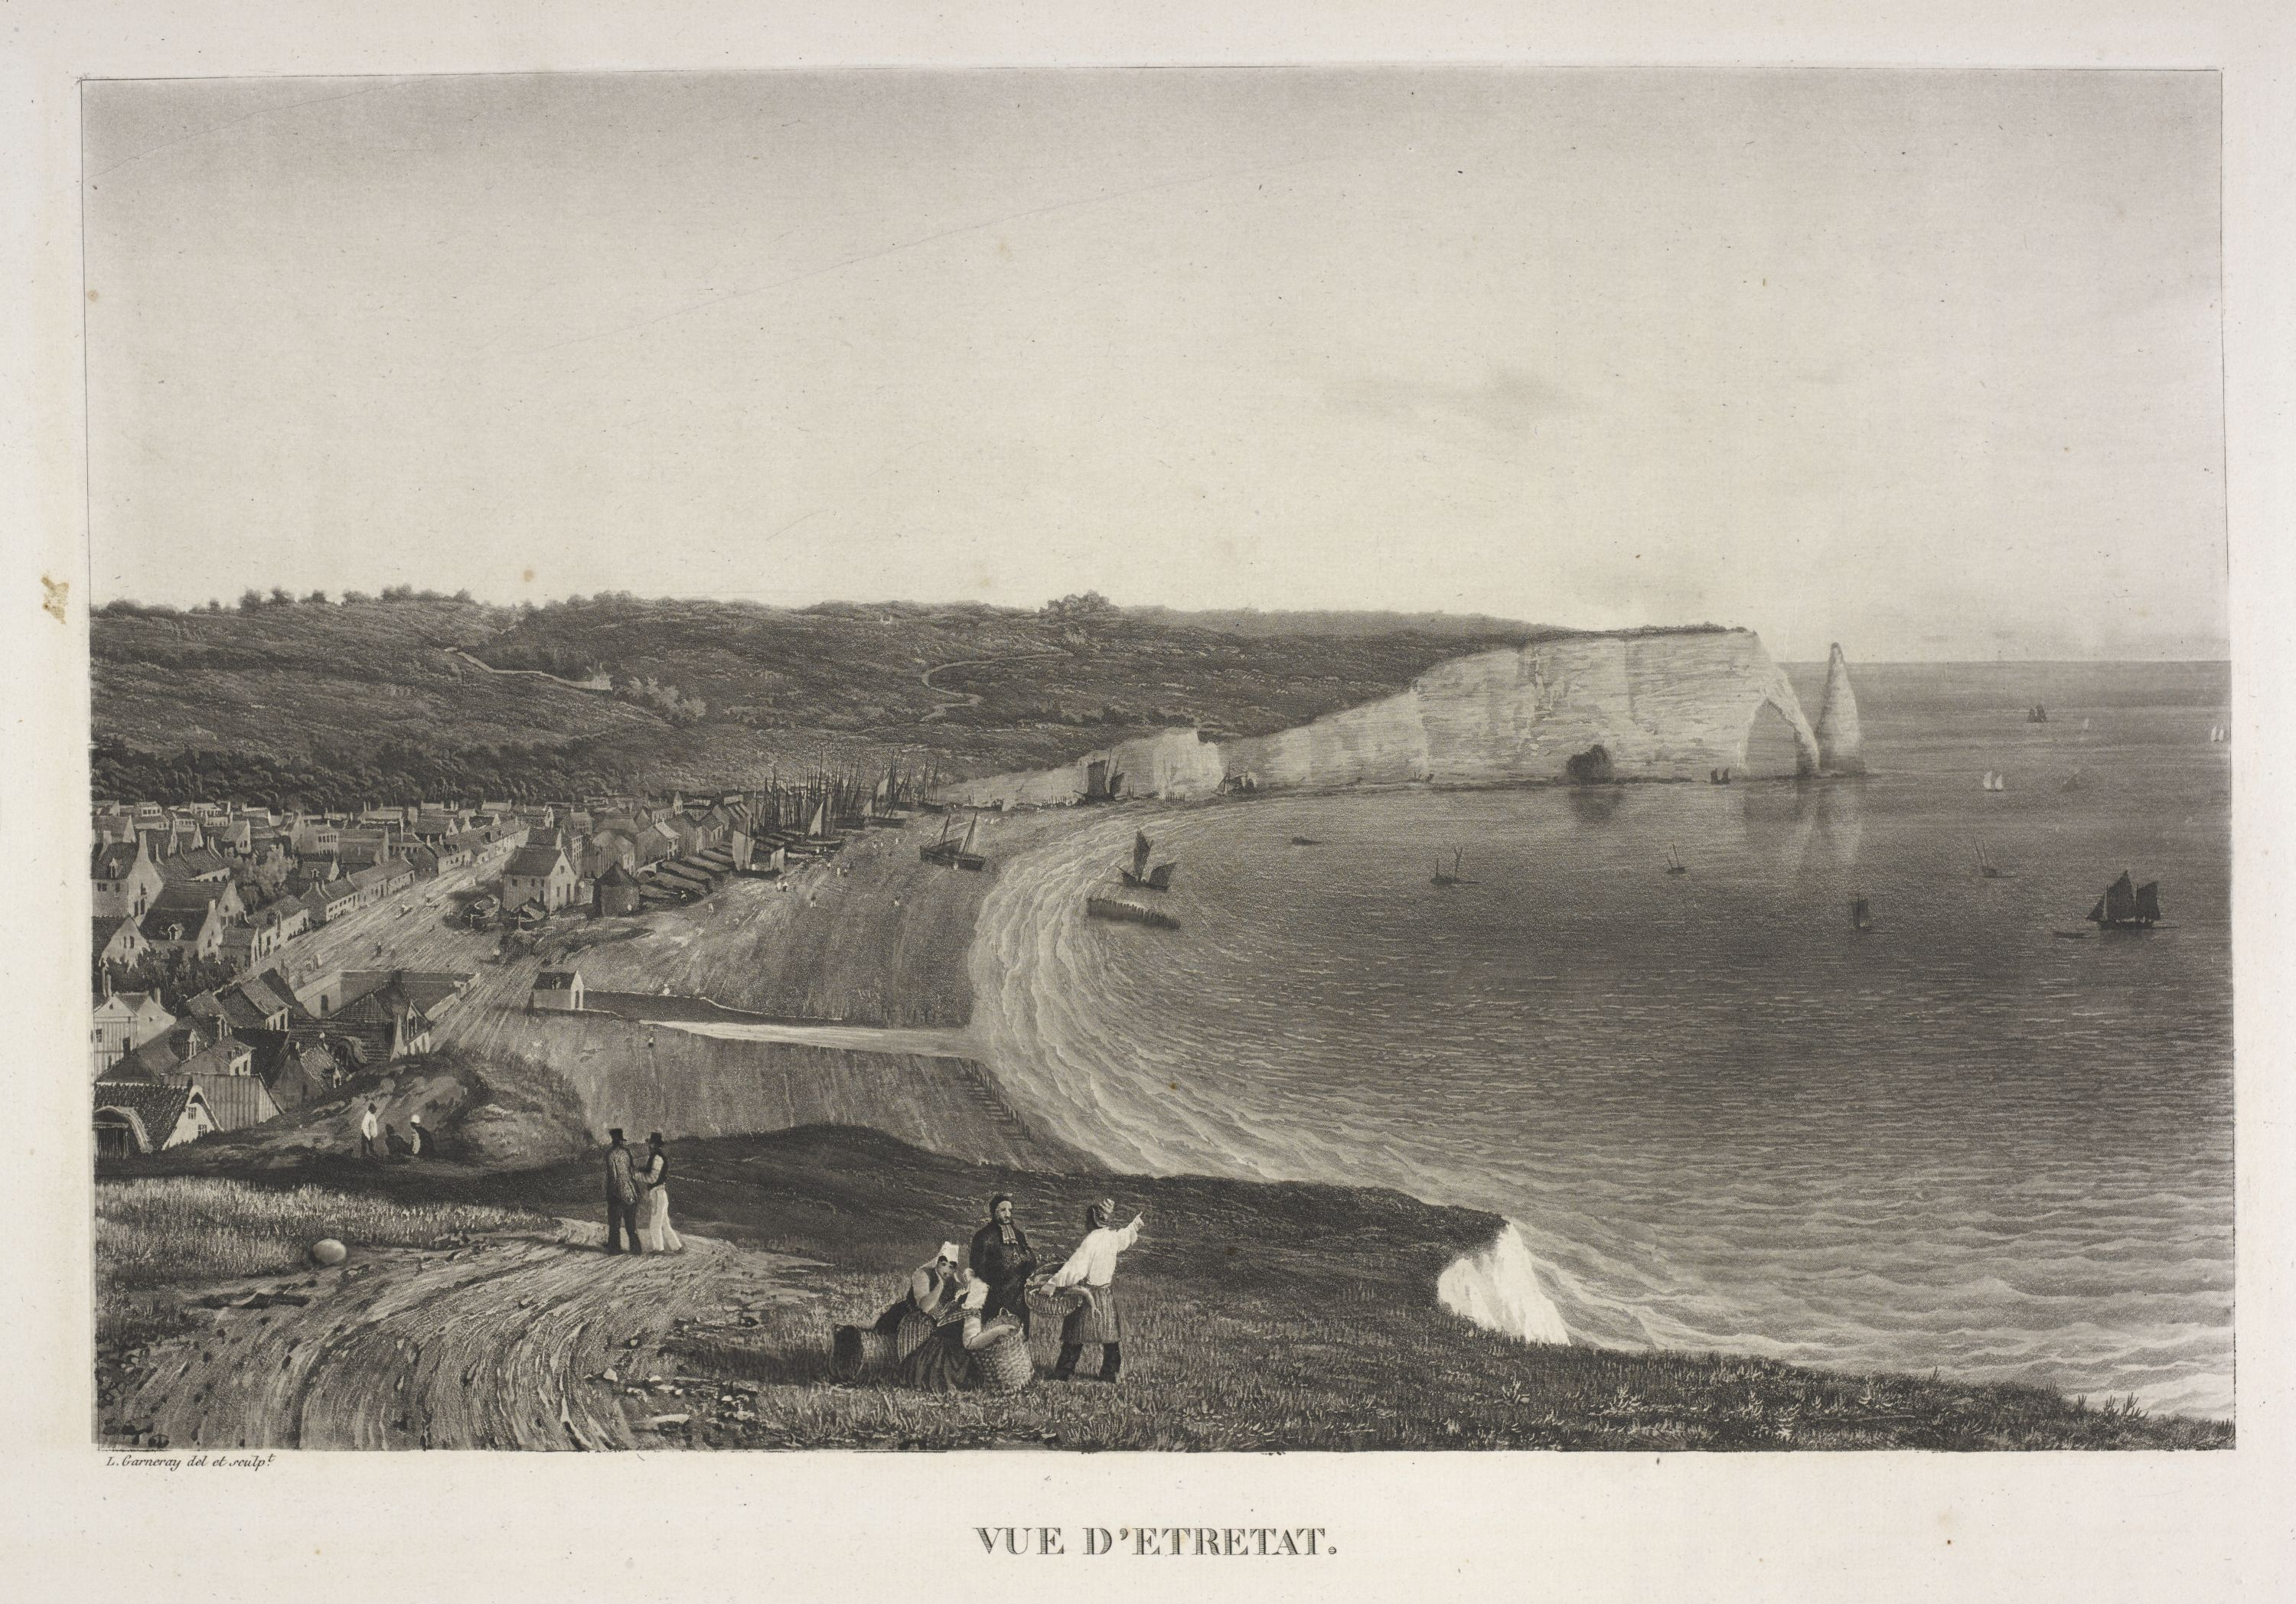 View of Étretat in Normandy by Louis Garneray